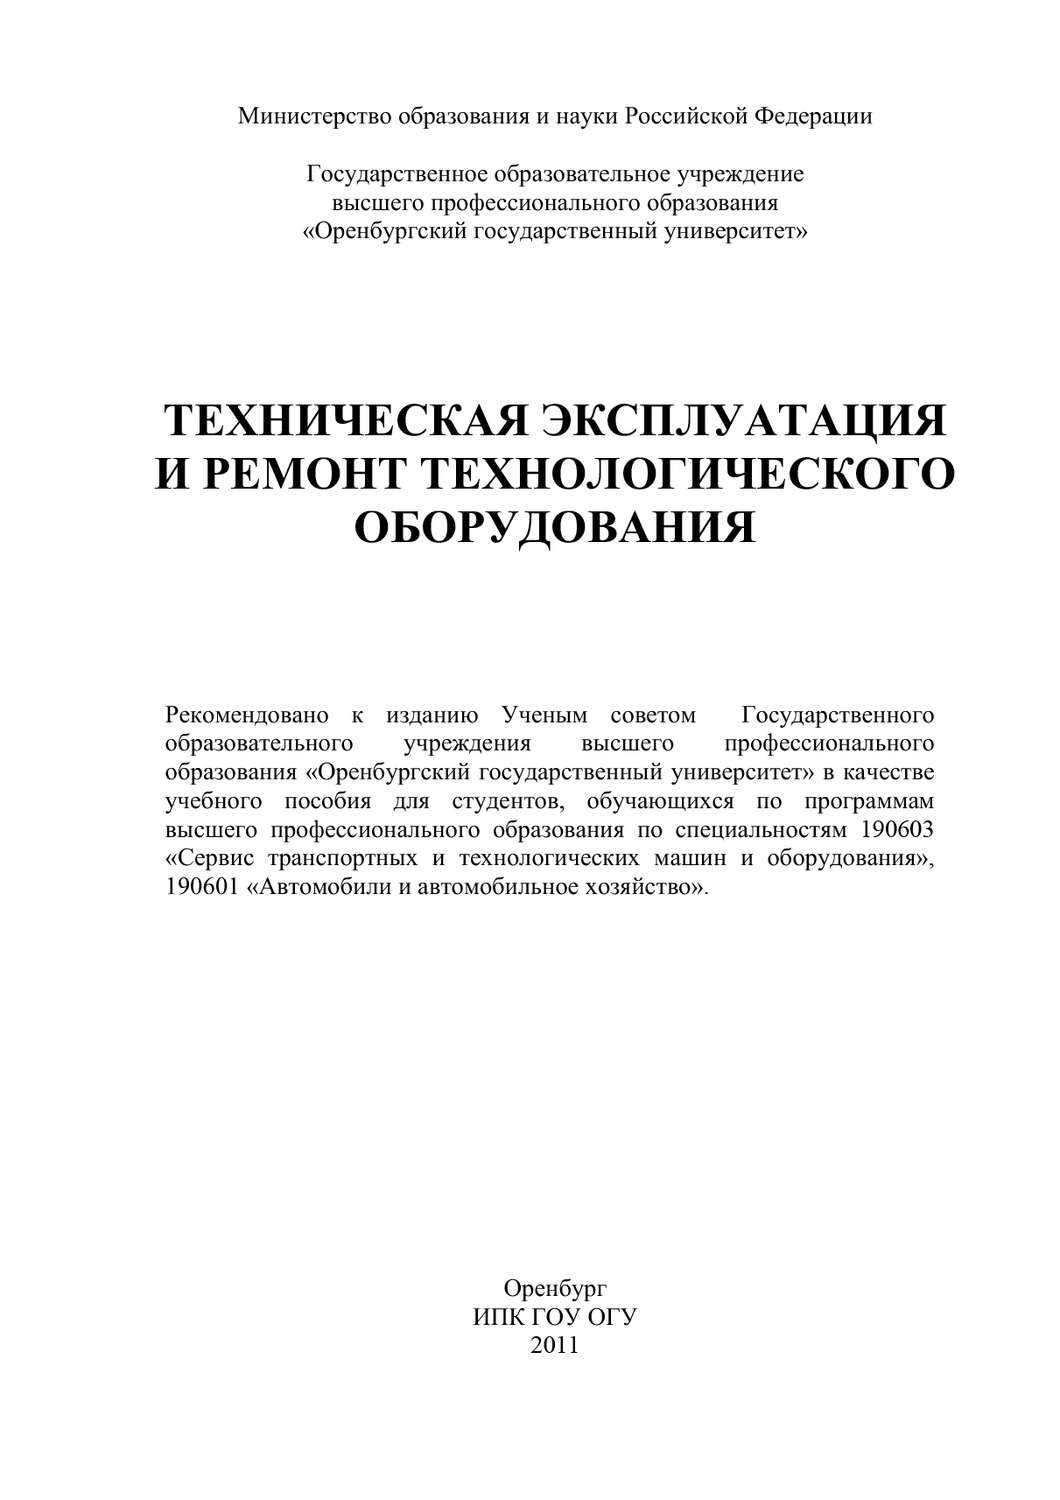 read international bibliography of historical sciences 2006